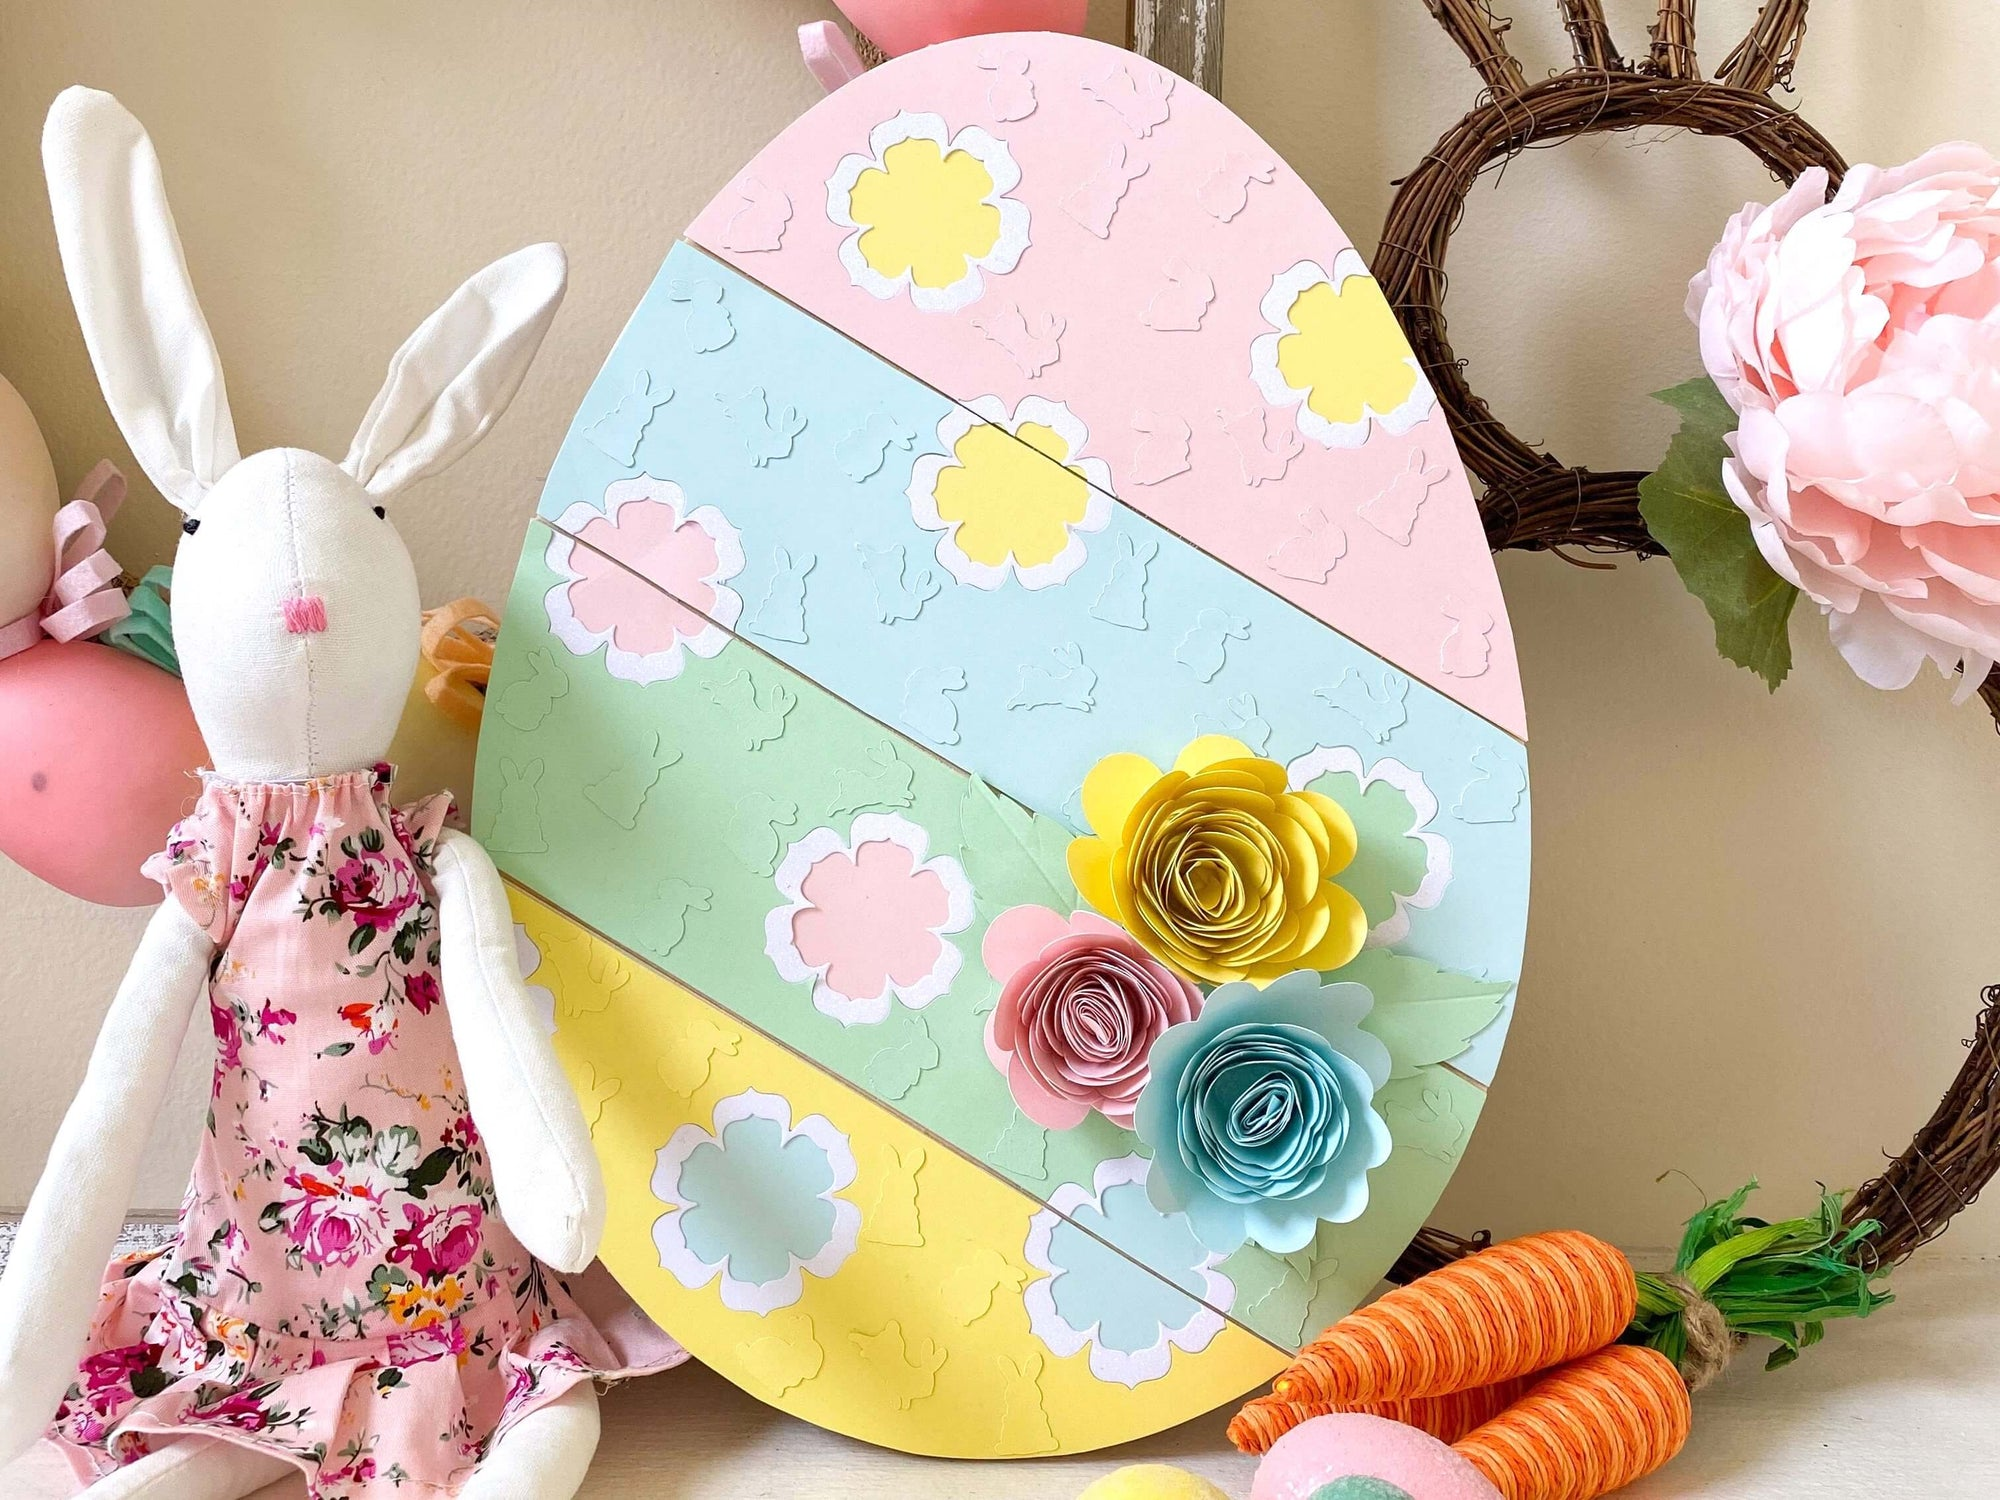 Pastel Paper Easter Egg Home Decor Project